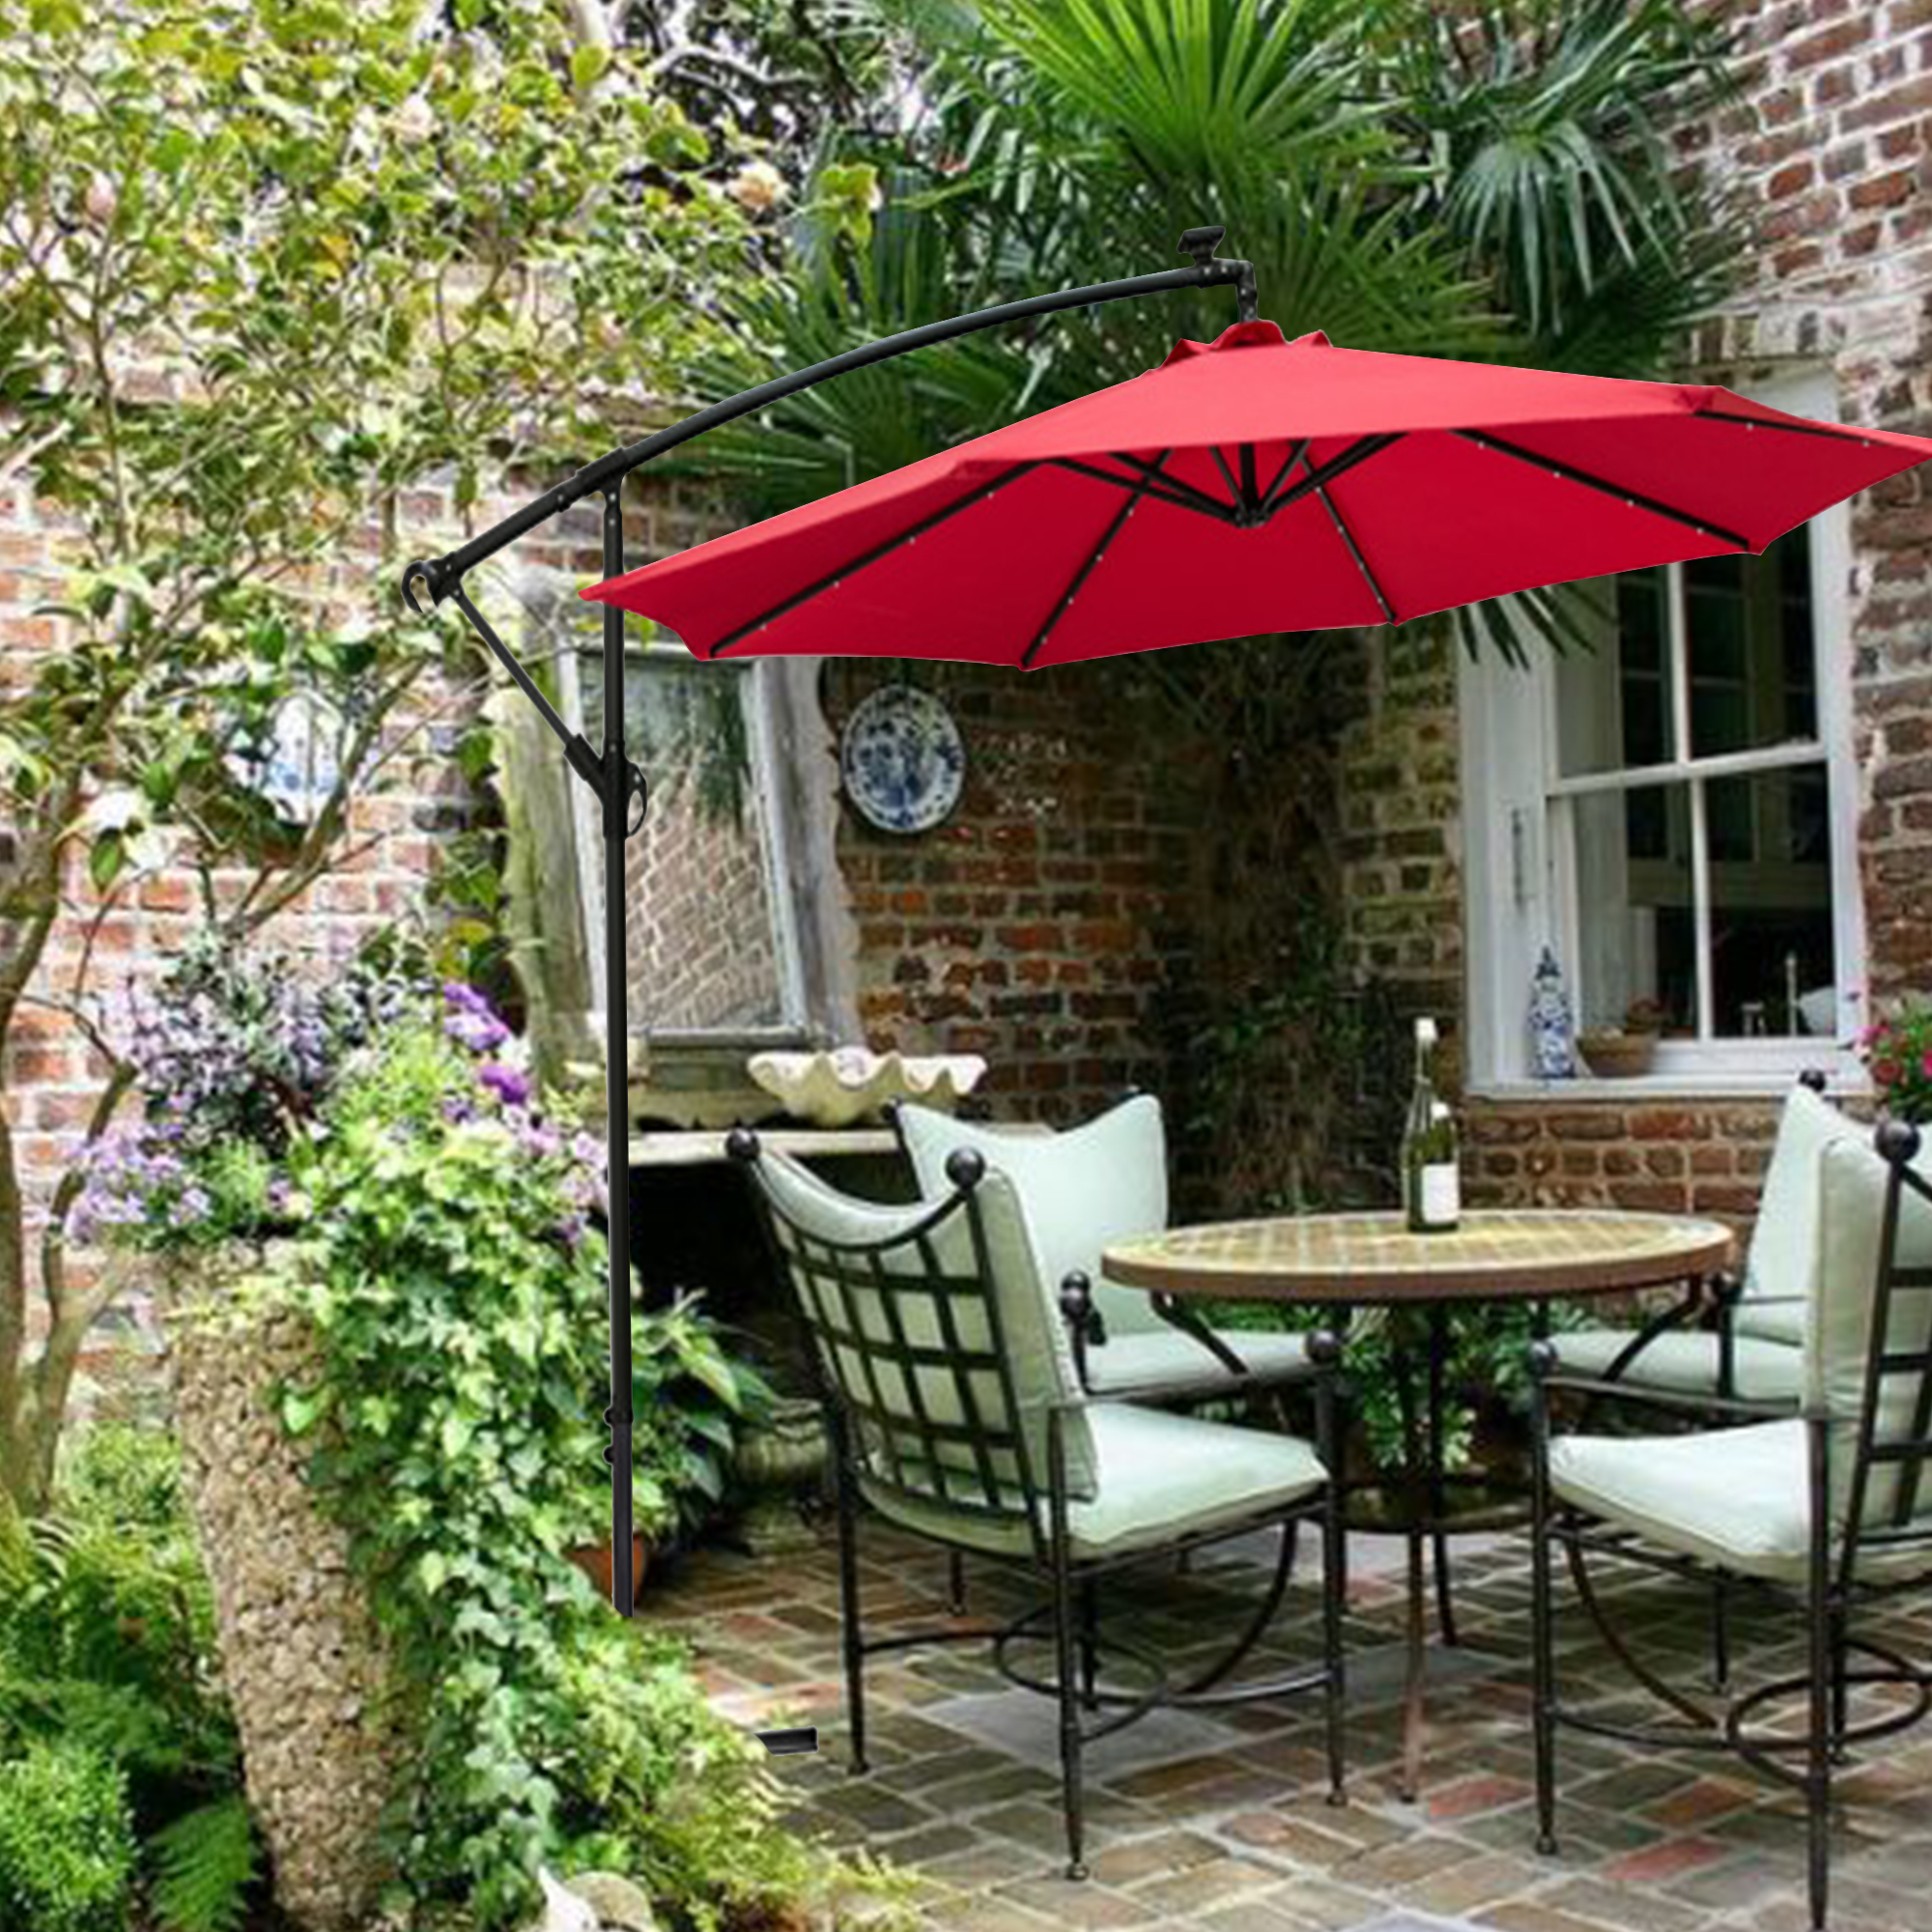 wesfital 10ft solar led offset hanging patio umbrella with crank handle red without base walmart com